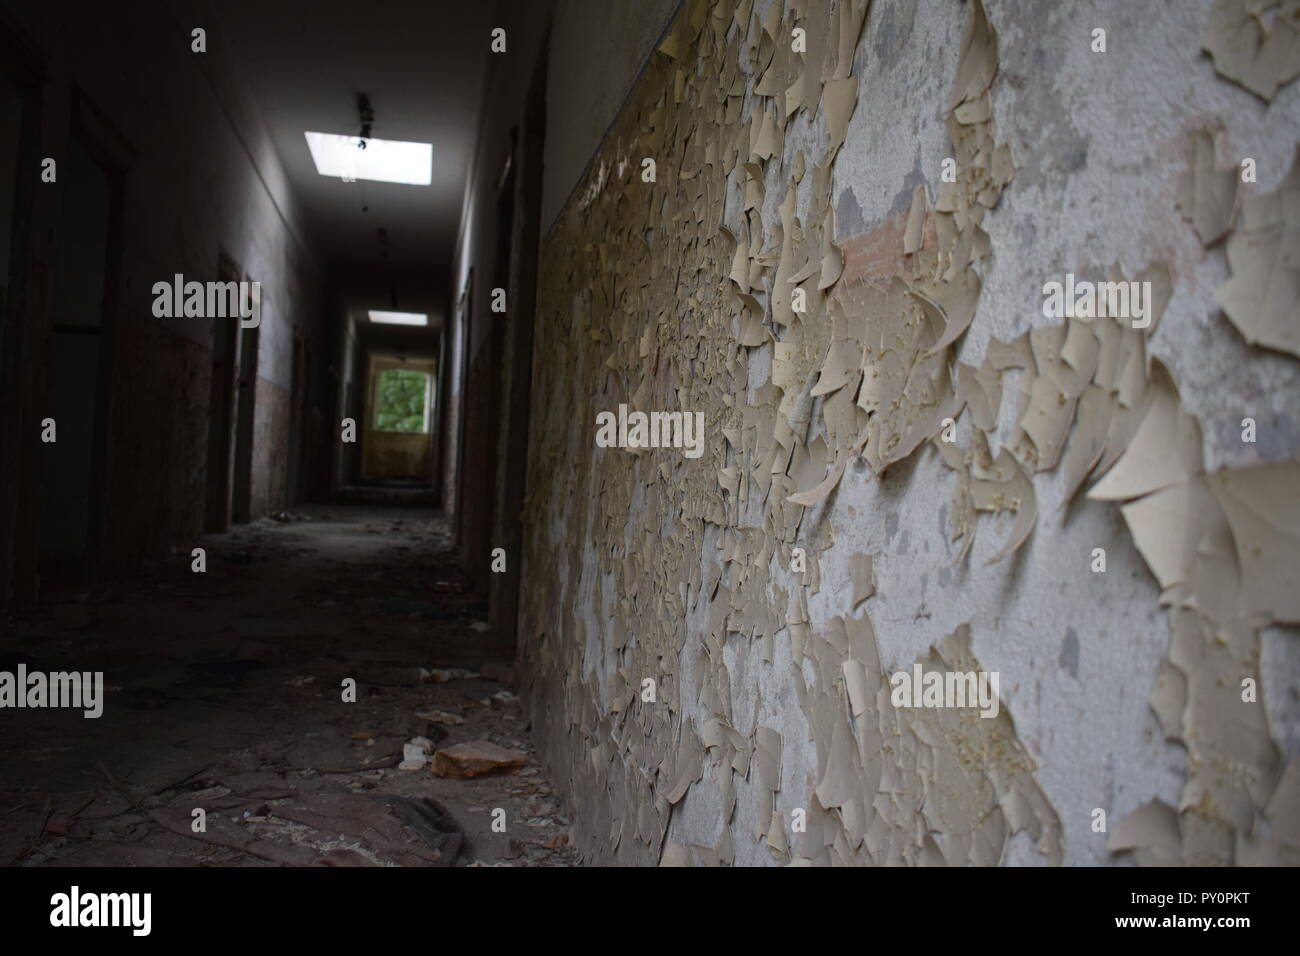 Interior of an abandoned building - Stock Image